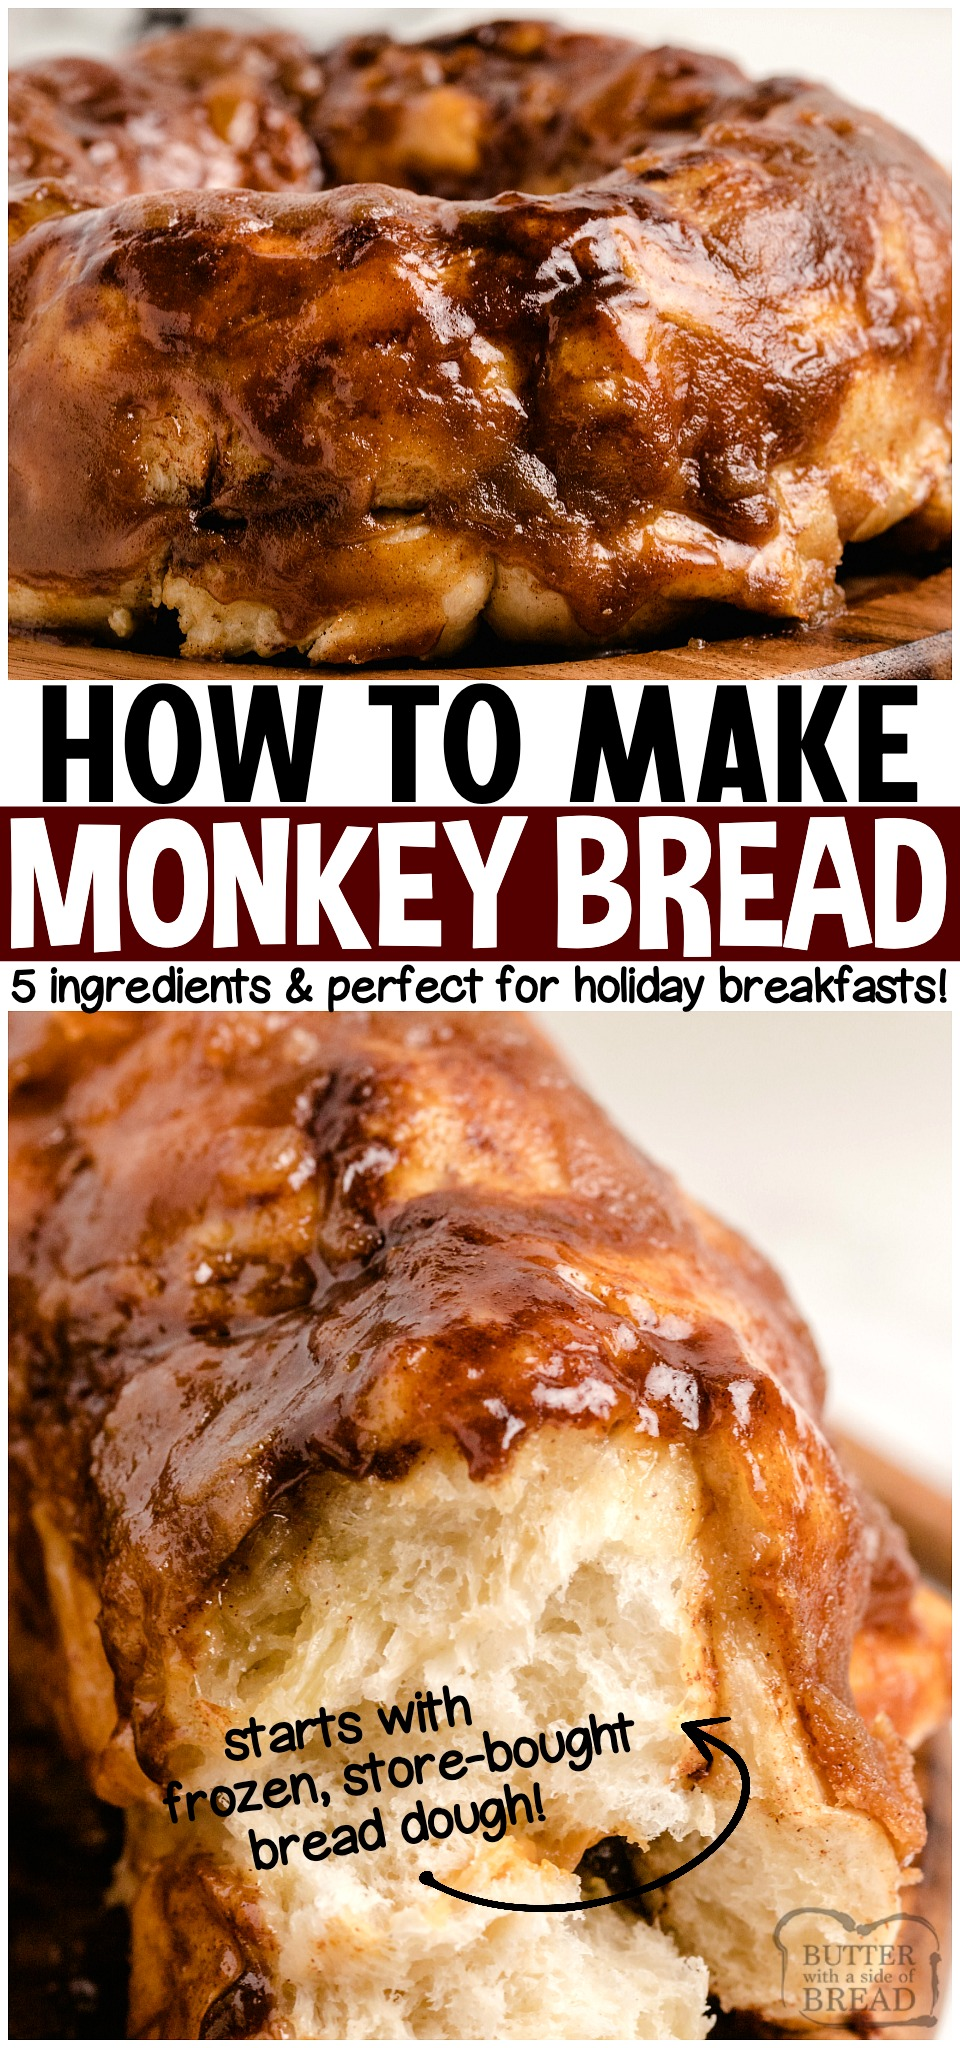 Monkey Bread is warm, gooey sweet cinnamon breakfast rolls made with brown sugar, butterscotch pudding, butter and frozen rolls. Learning How to make Monkey Bread is easy- and it can be done the night before!